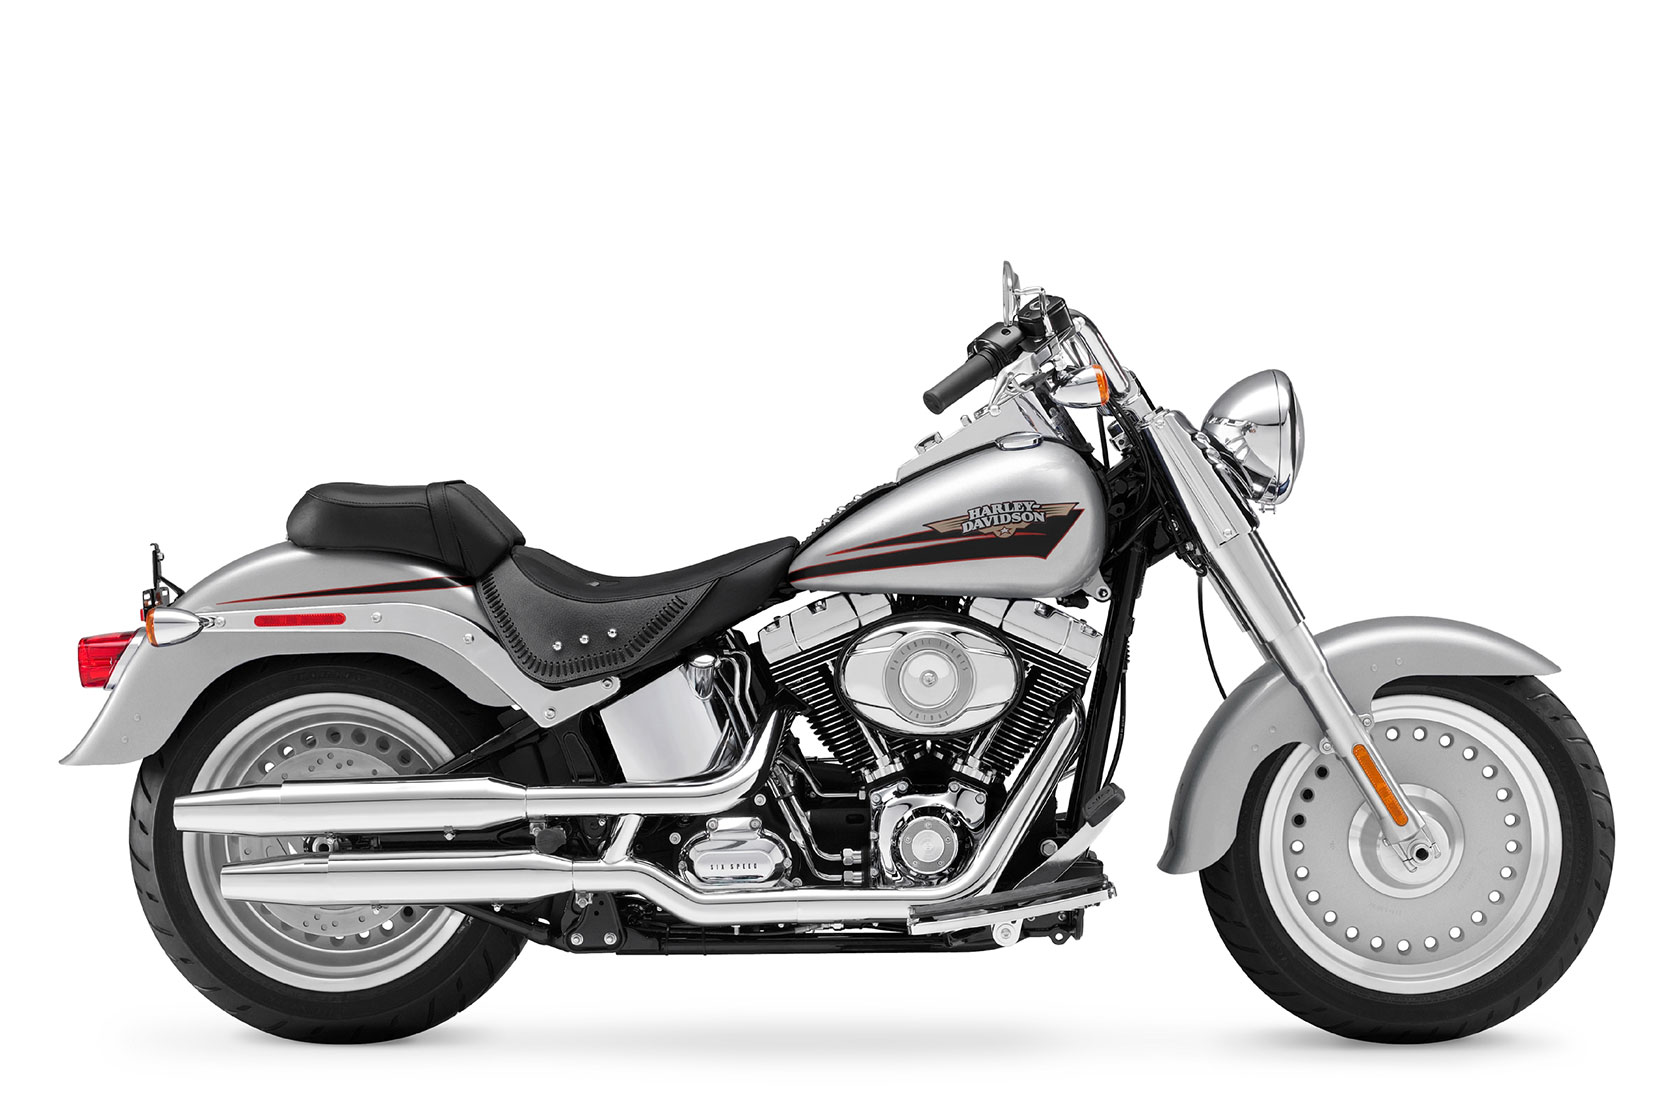 Harley-Davidson FLSTF Fat Boy 2009 images #80420